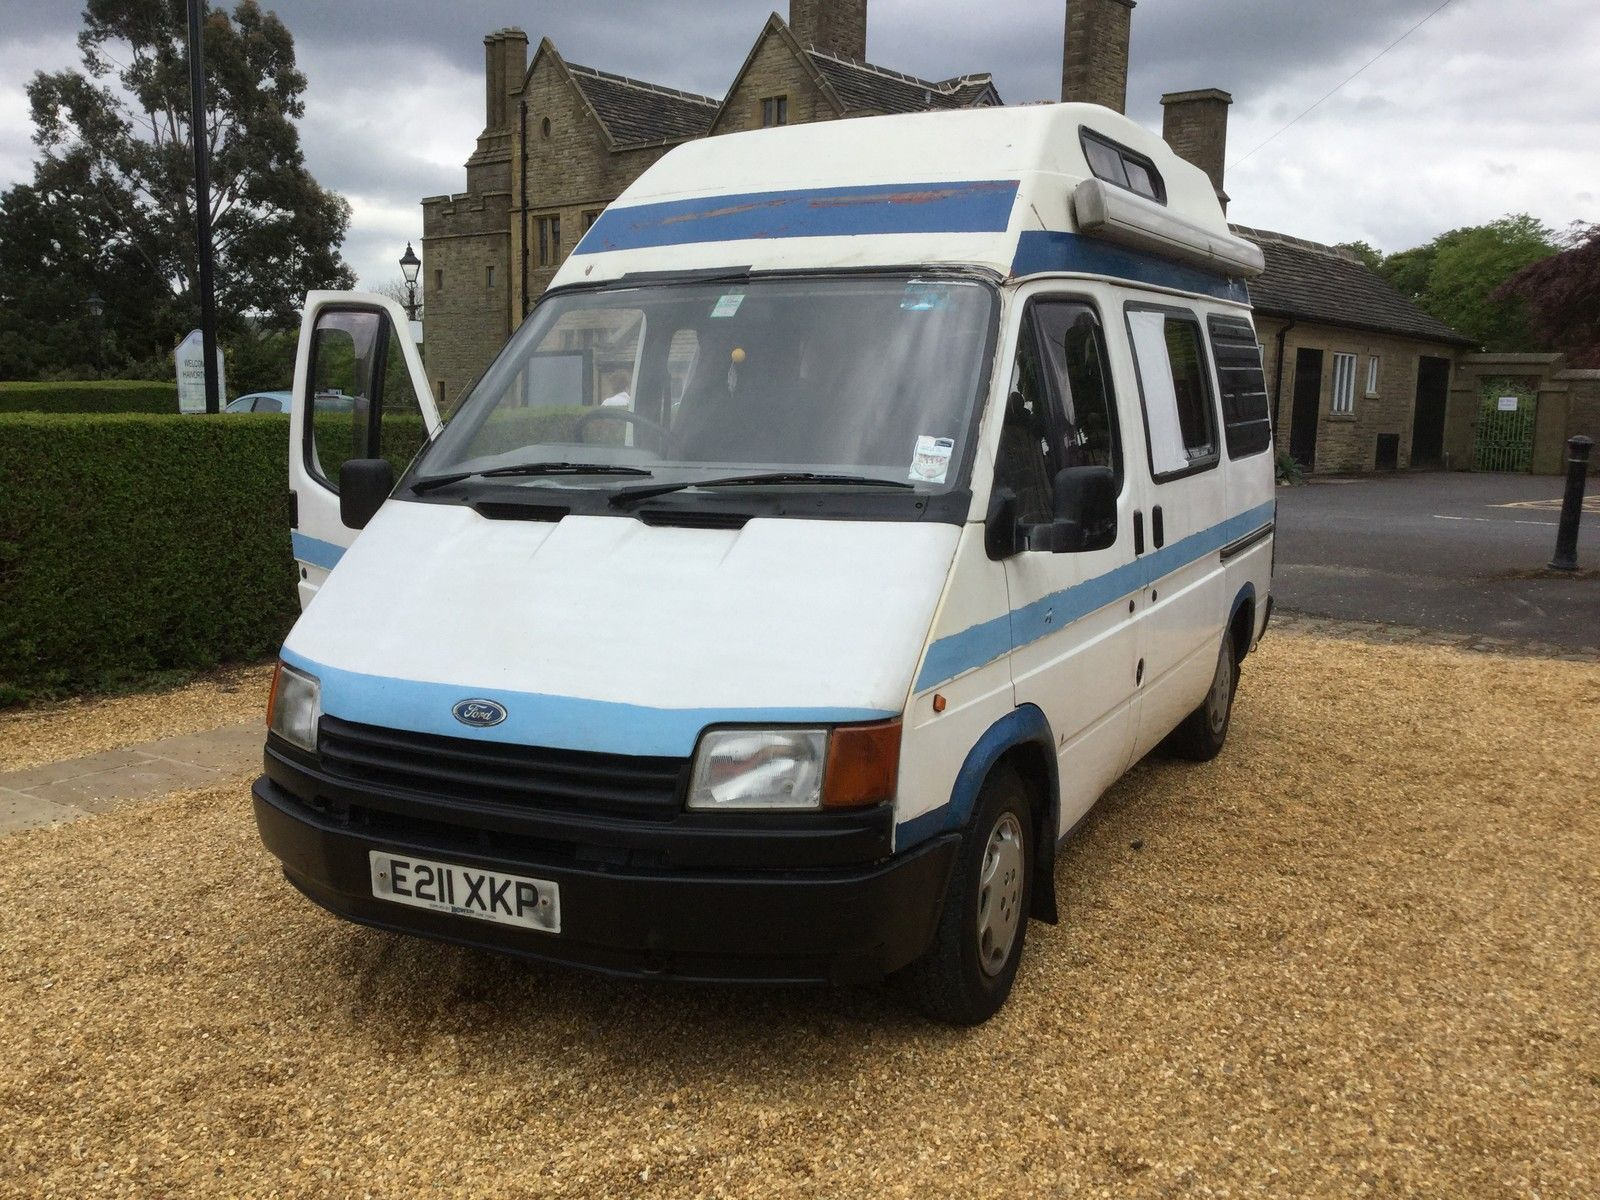 Http Www Ebay Co Uk Itm Ford Transit Flair Autosleeper Motorhome